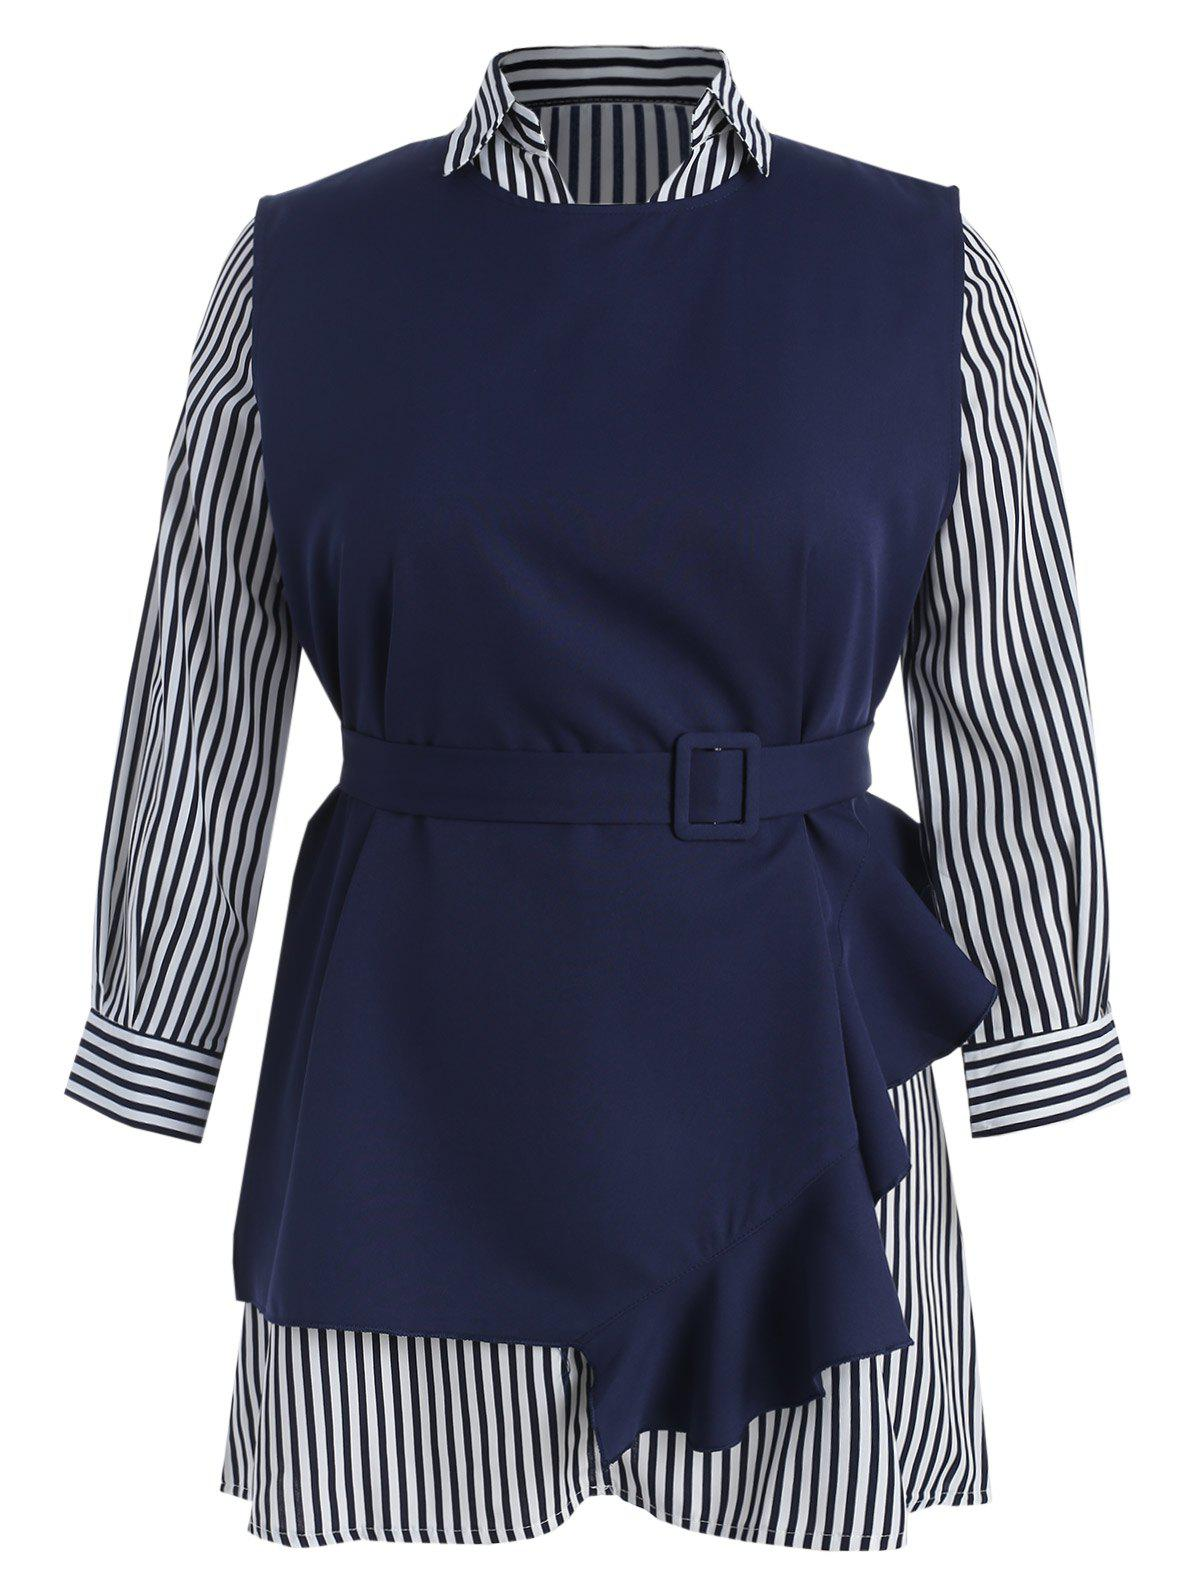 Plus Size Striped Dress and Ruffle Top with Belt - DARK SLATE BLUE L